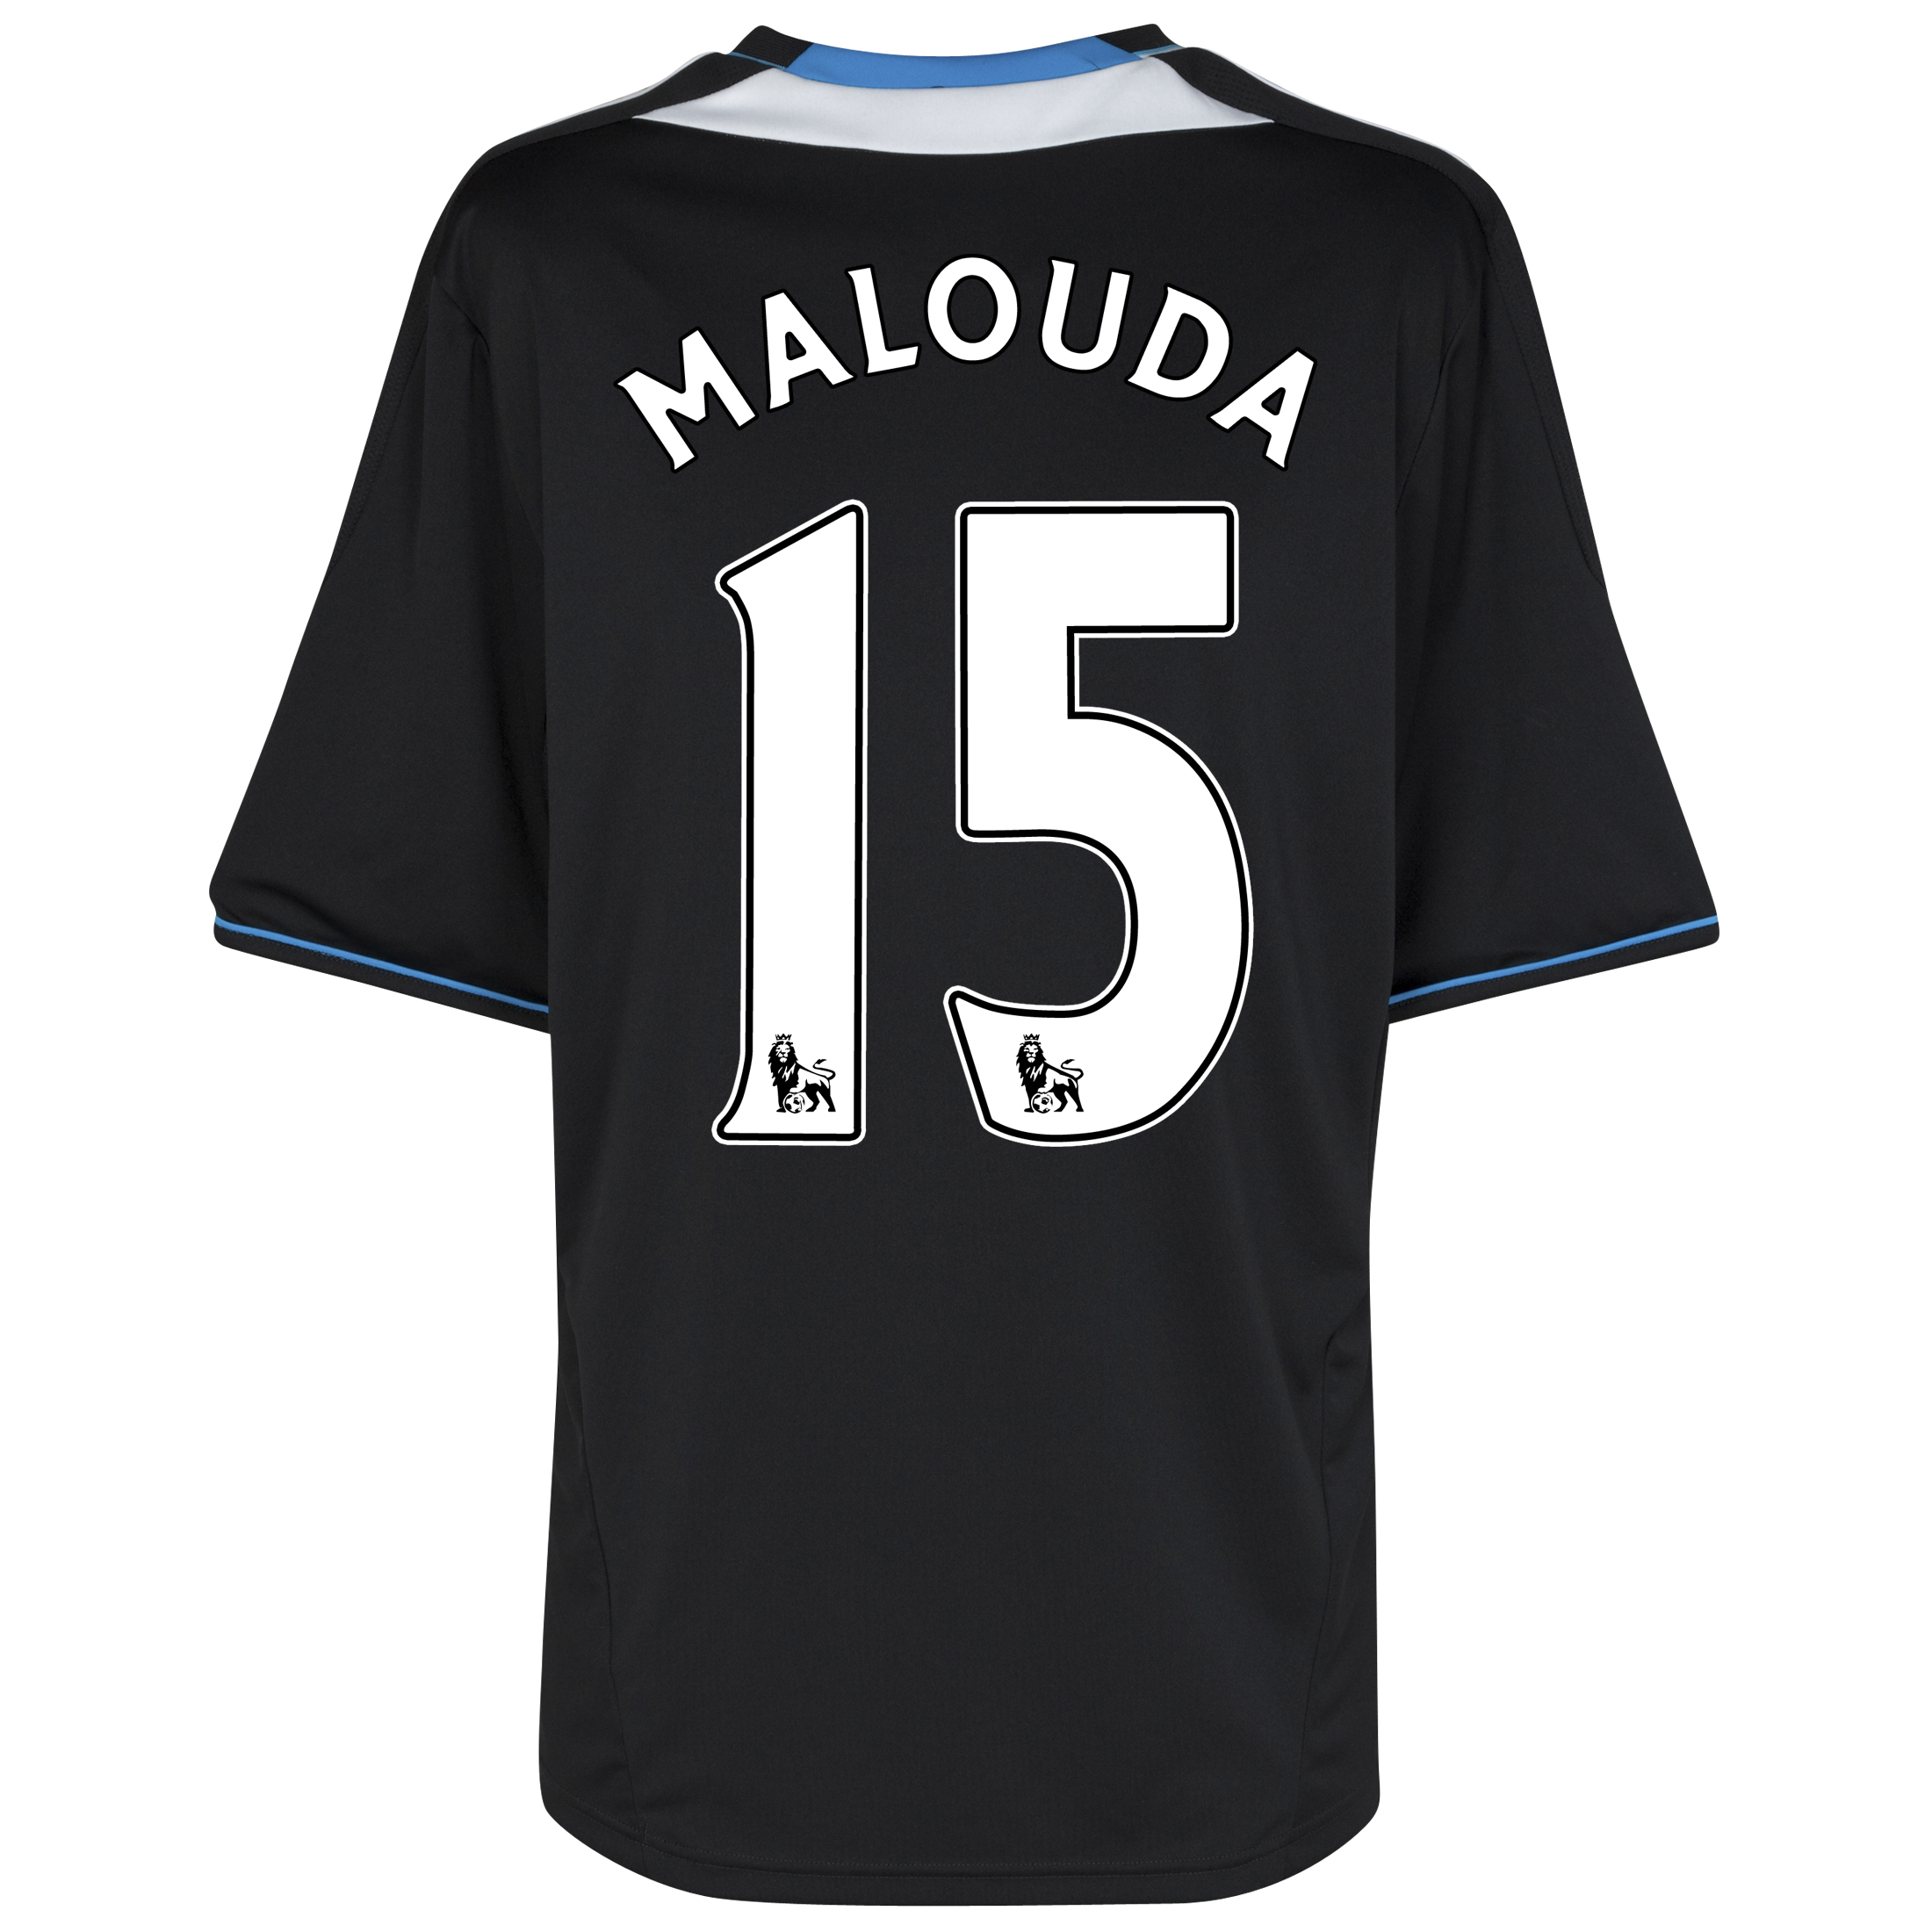 Chelsea Away Shirt 2011/12 with Malouda 15 printing